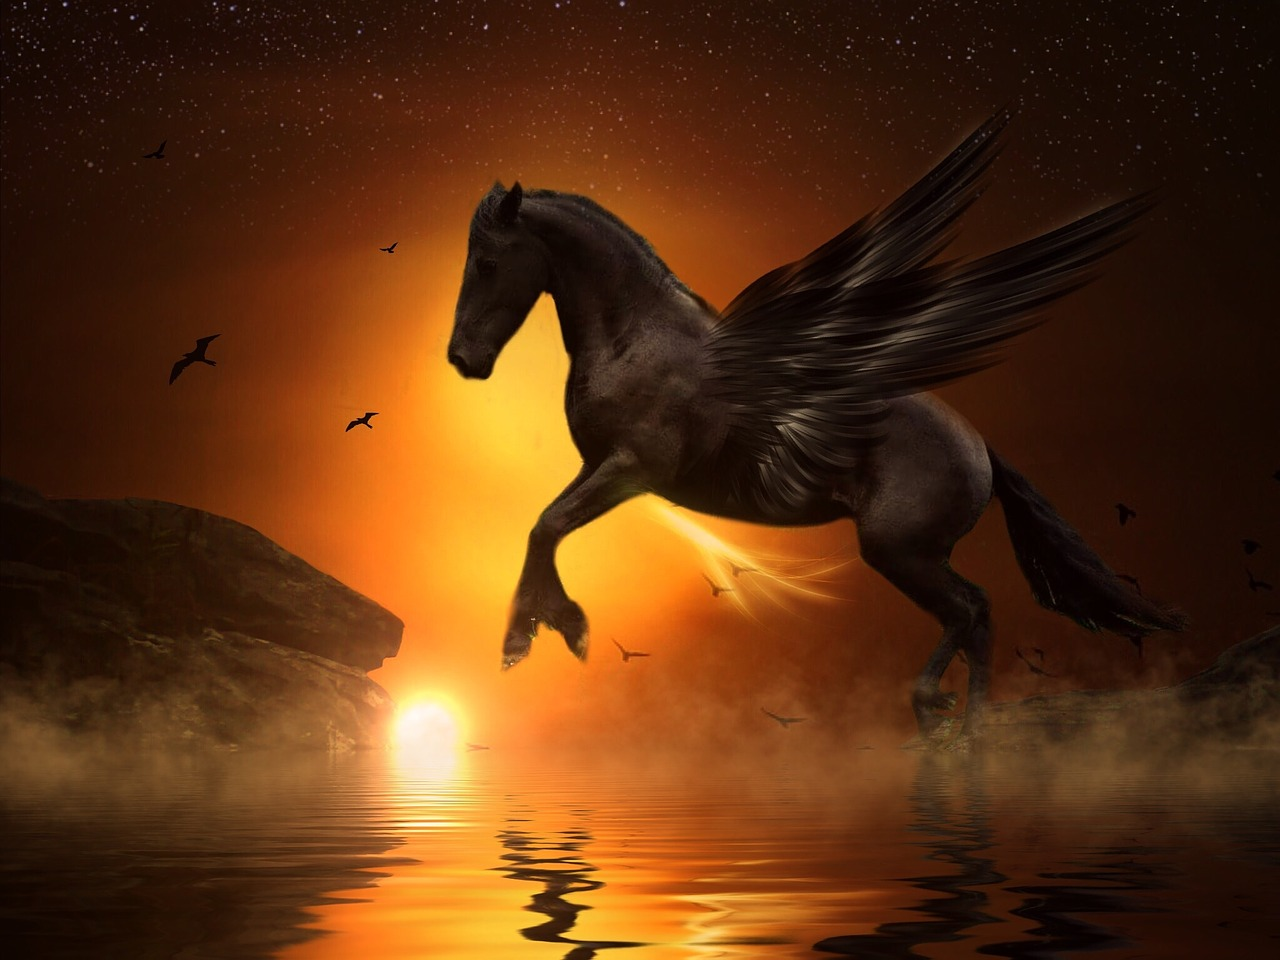 Mythical Creatures In The Fall Wallpaper Saturn Enters Sagittarius